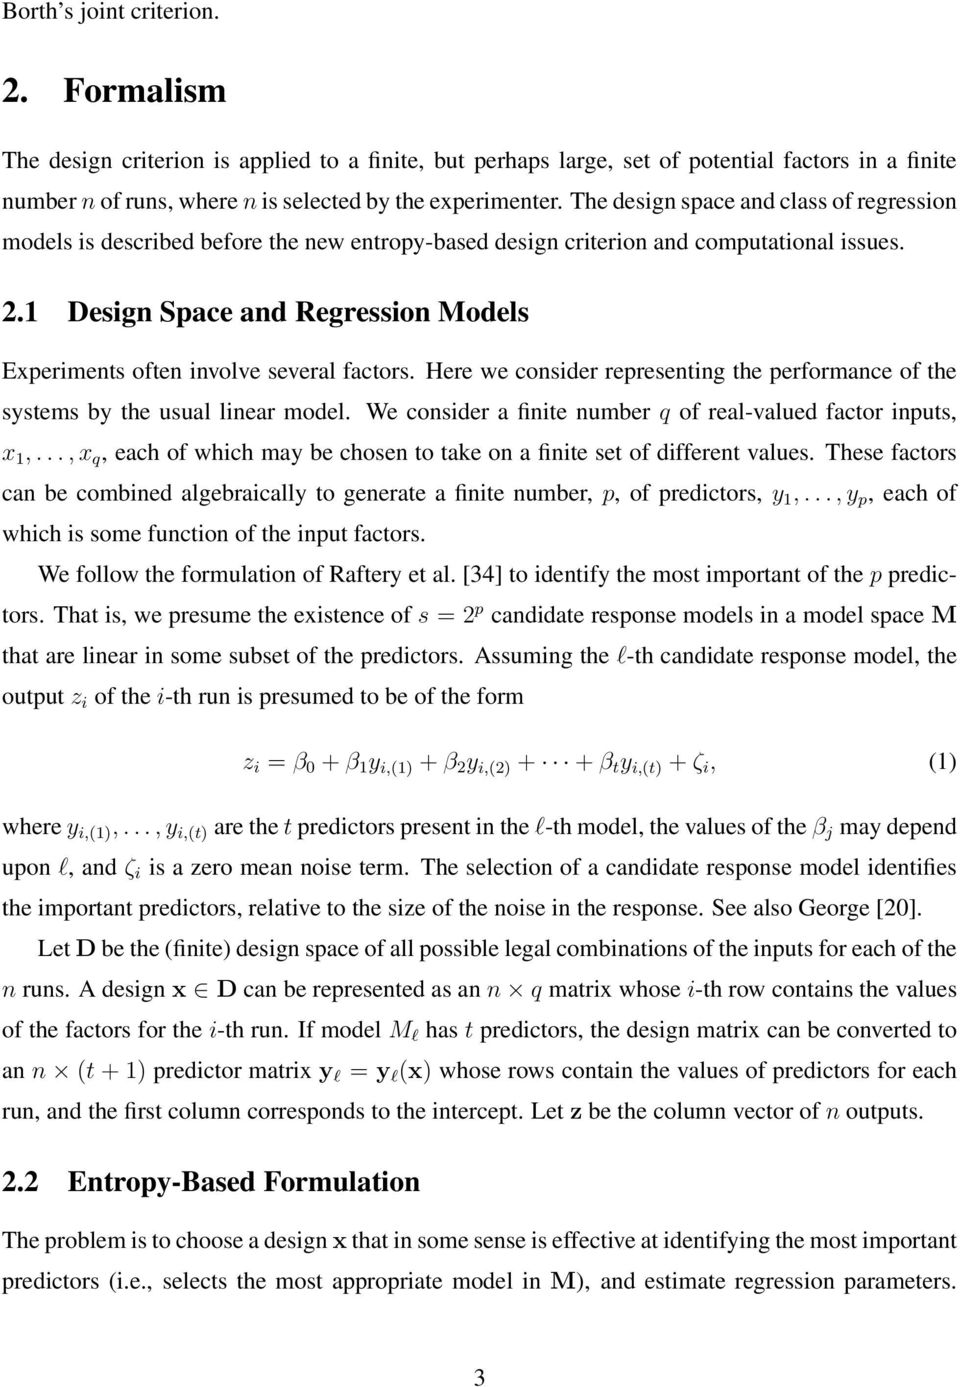 1 Design Space and Regression Modes Experiments often invove severa factors. Here we consider representing the performance of the systems by the usua inear mode.